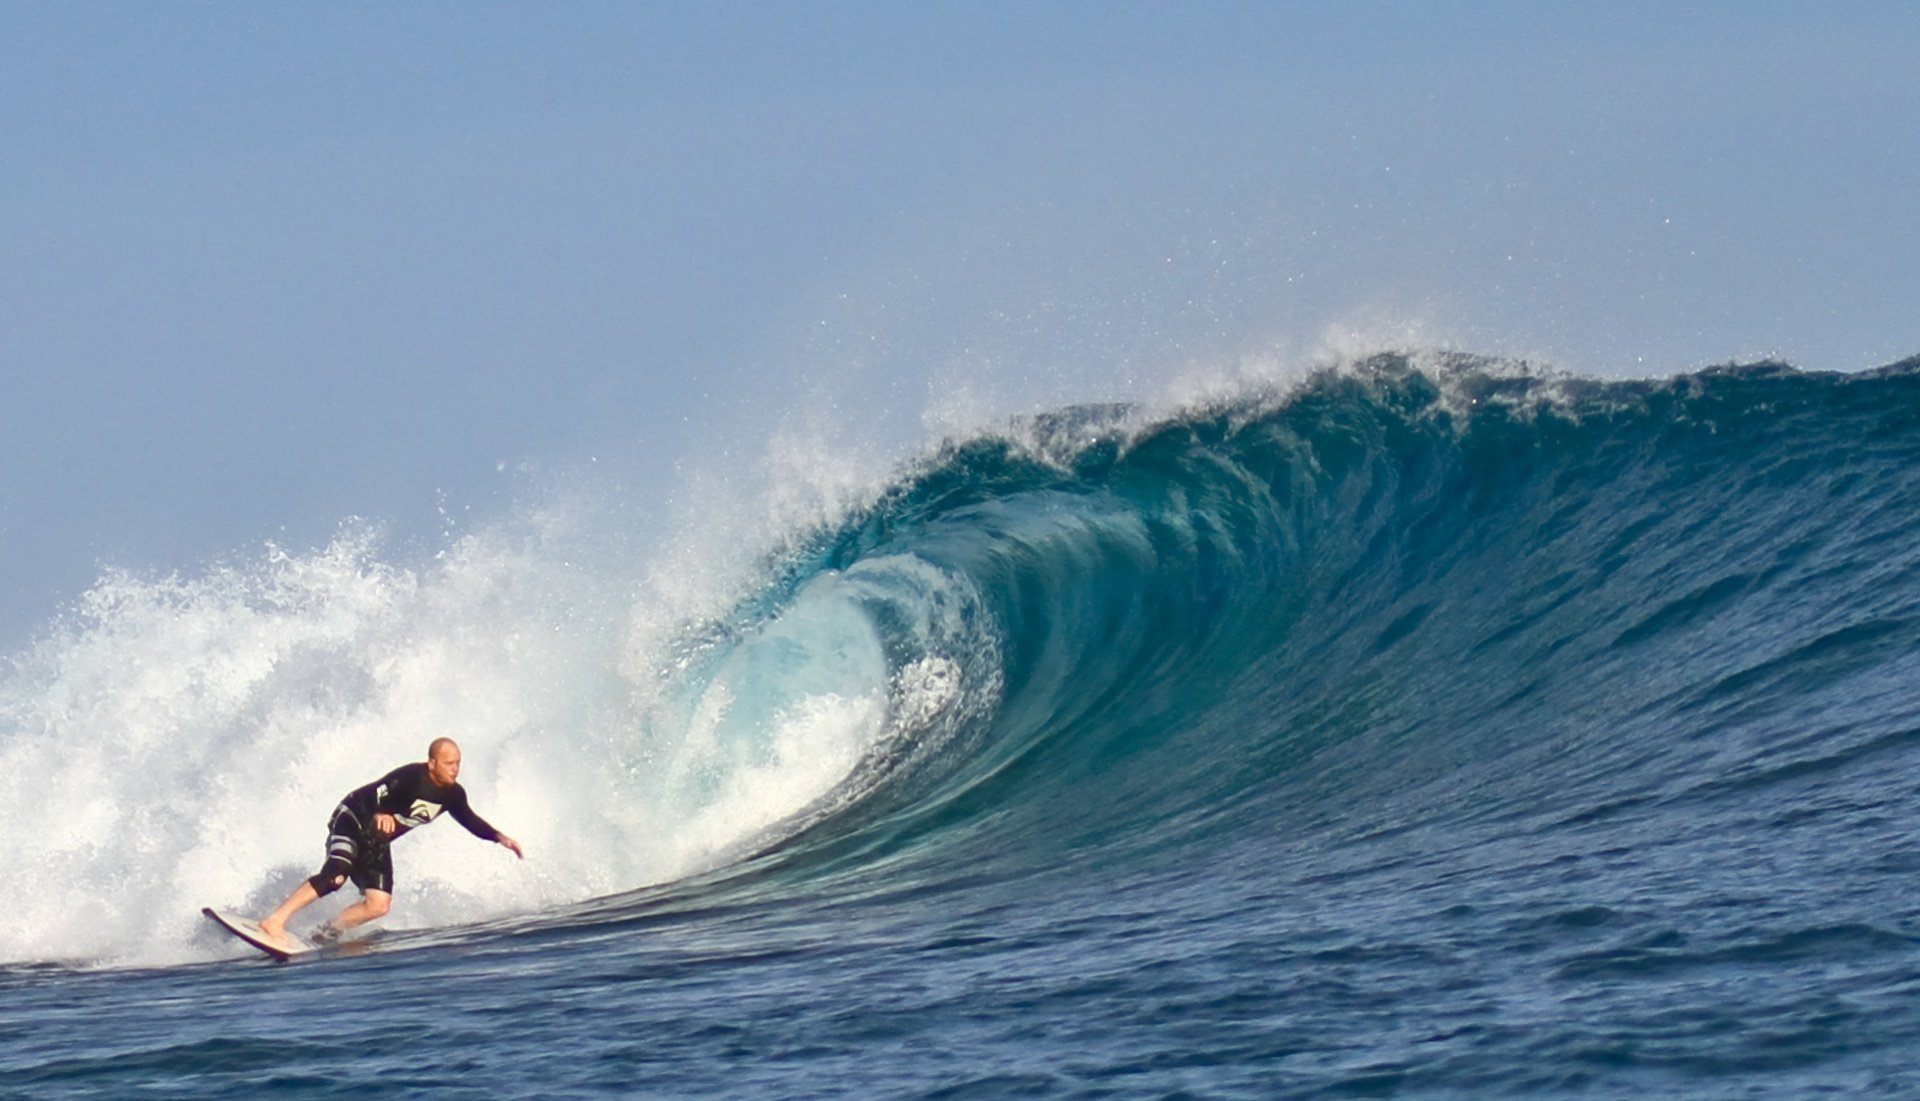 dangacore's photo of Tavarua - Cloudbreak